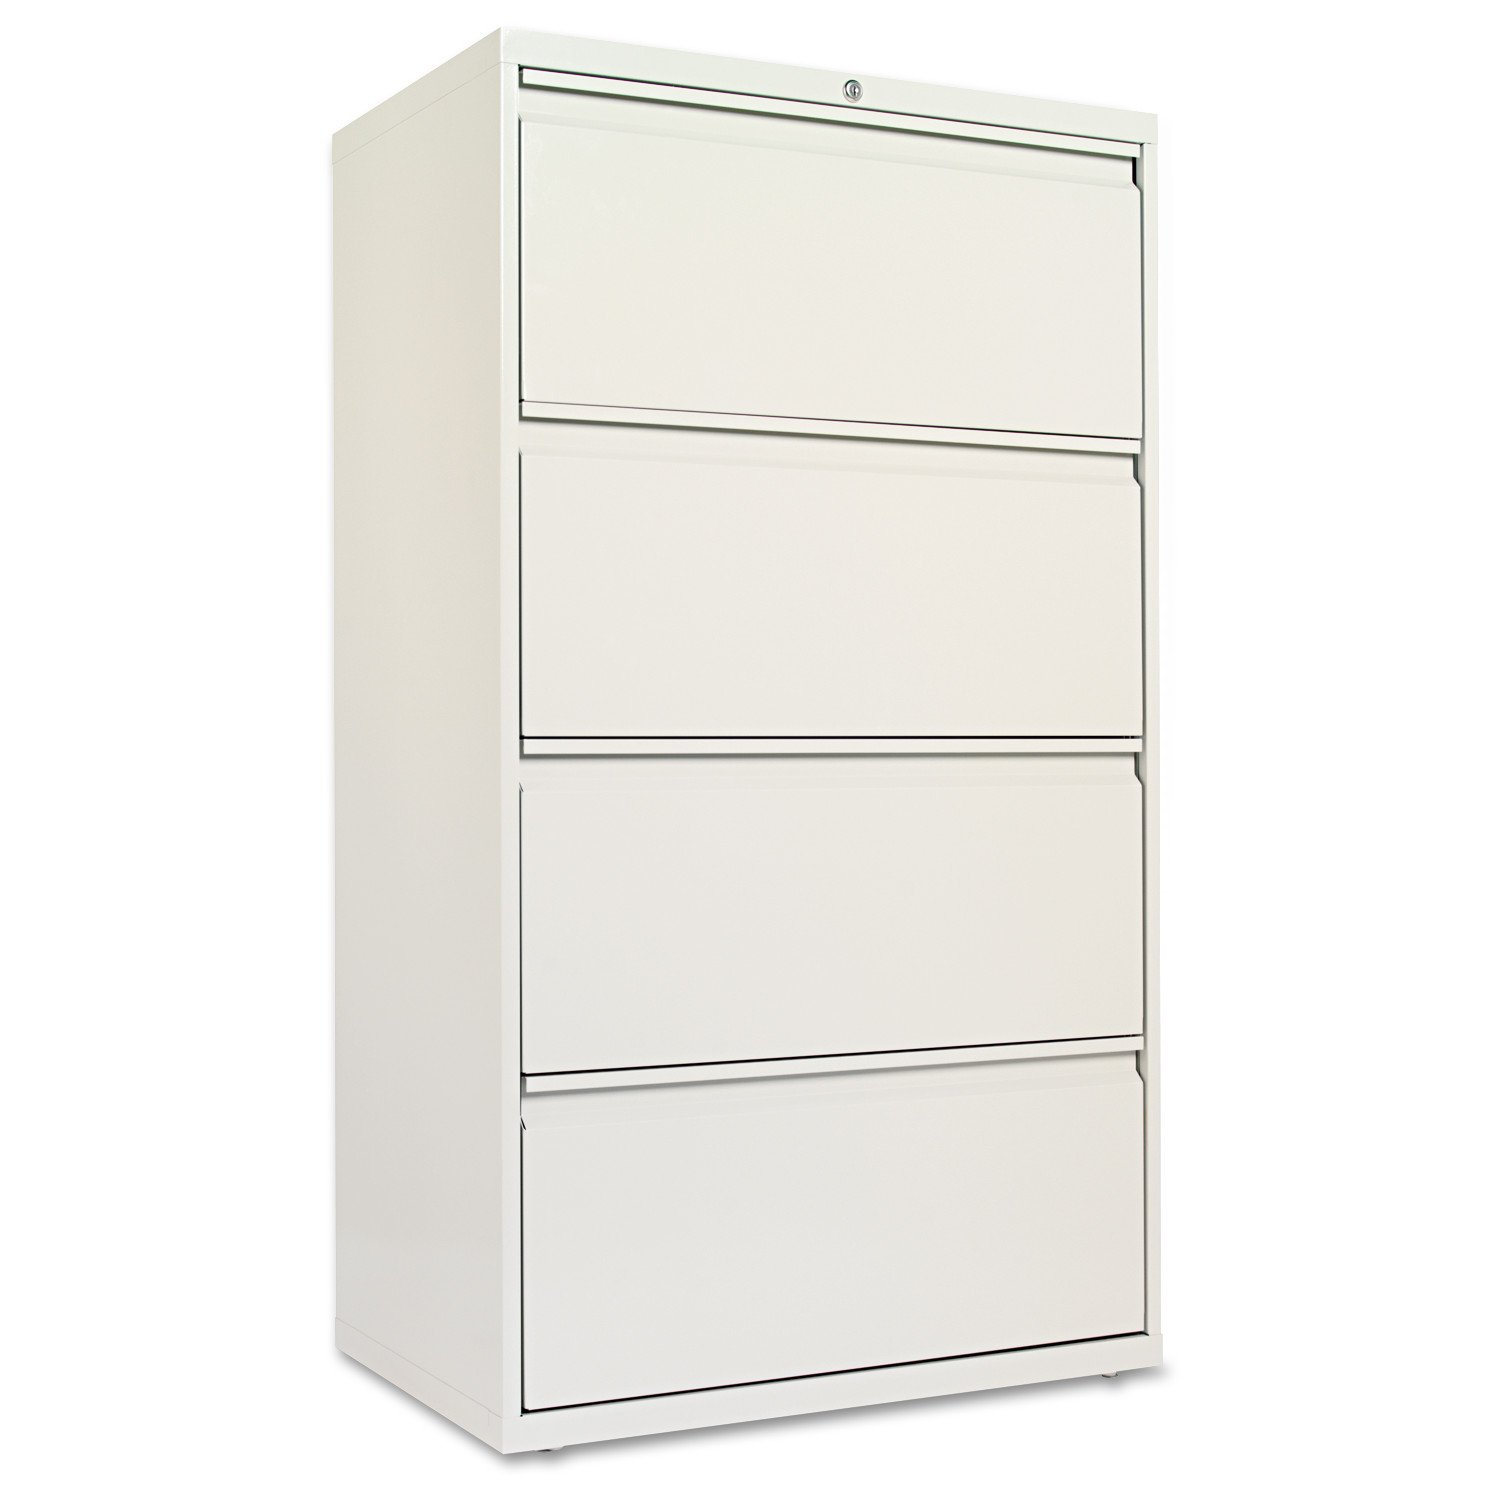 Best Lateral File Cabinet Reviews and Buying Guide 10